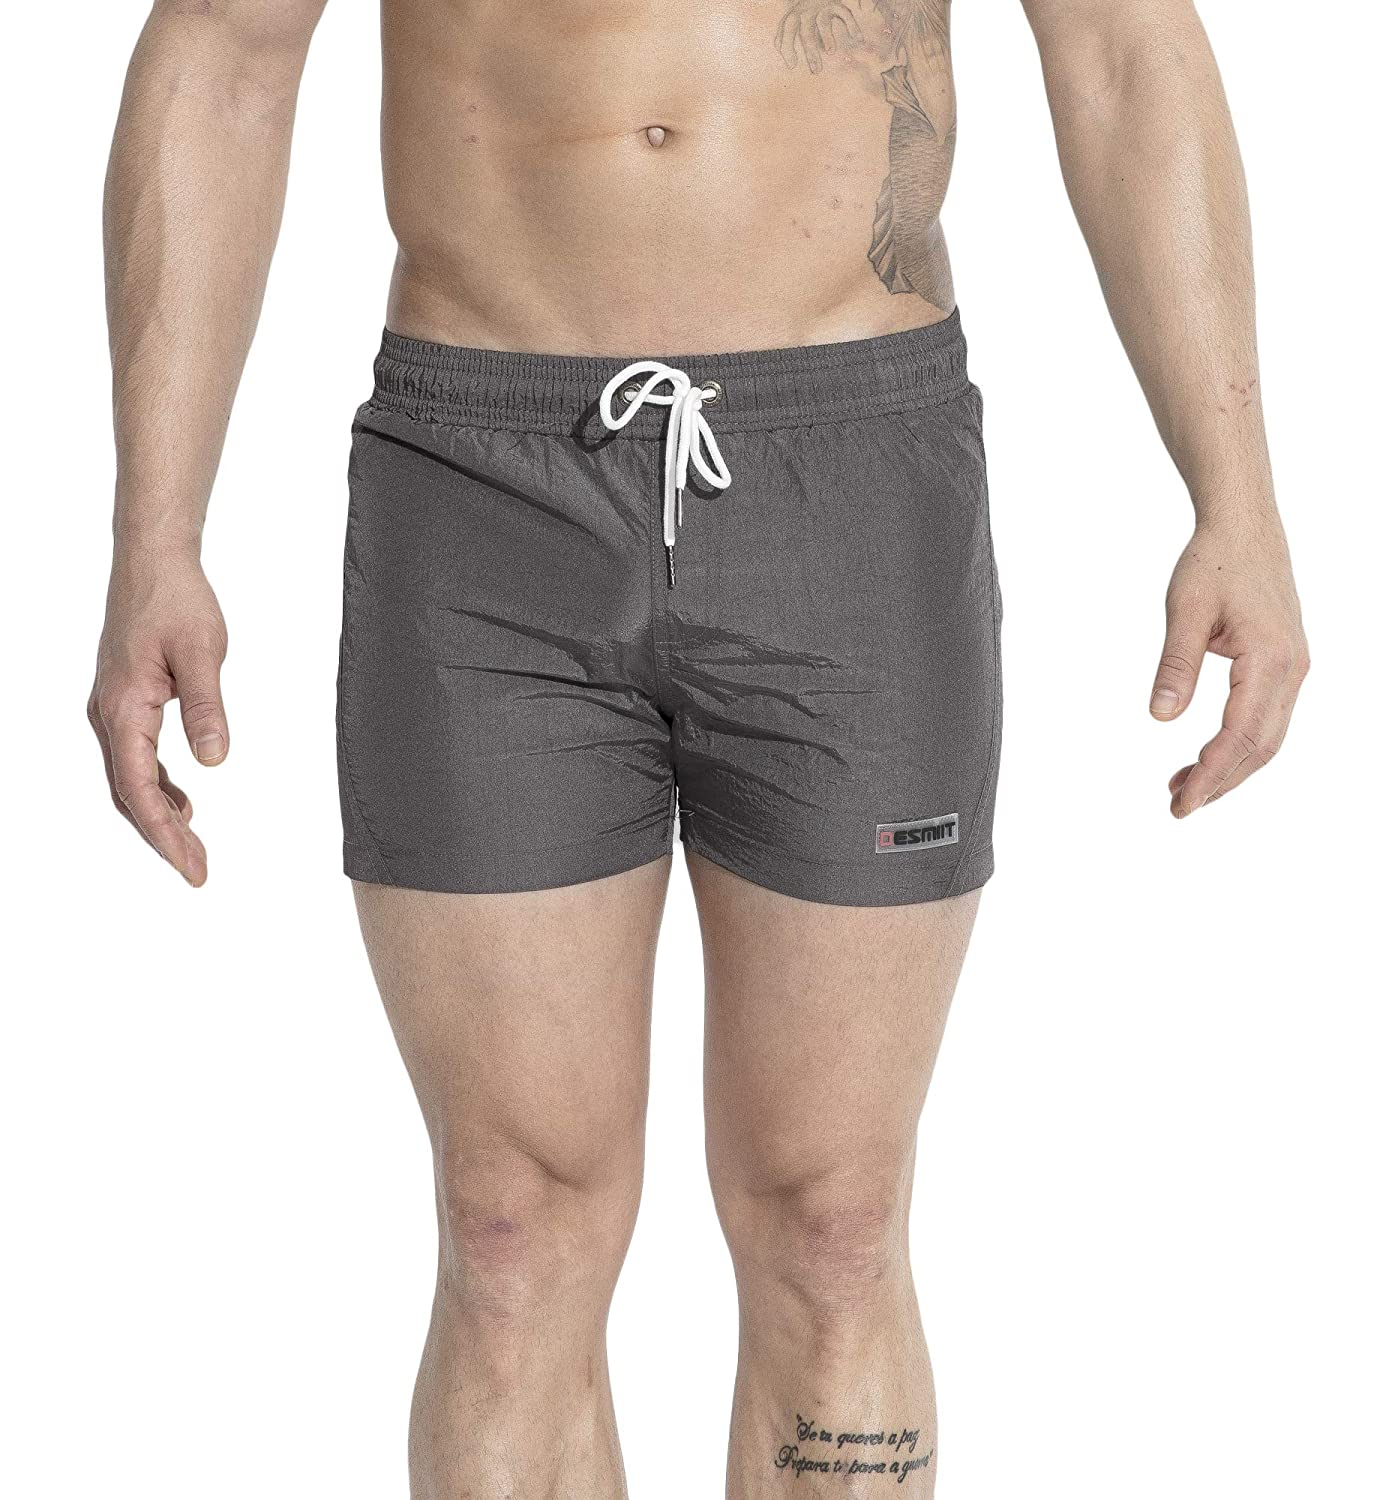 MZIMK Men's Quick Dry Beach Board Shorts Solid Mens Swim Trunk Beach Shorts with Mesh Lining, Pocket ROLET-2X3-168